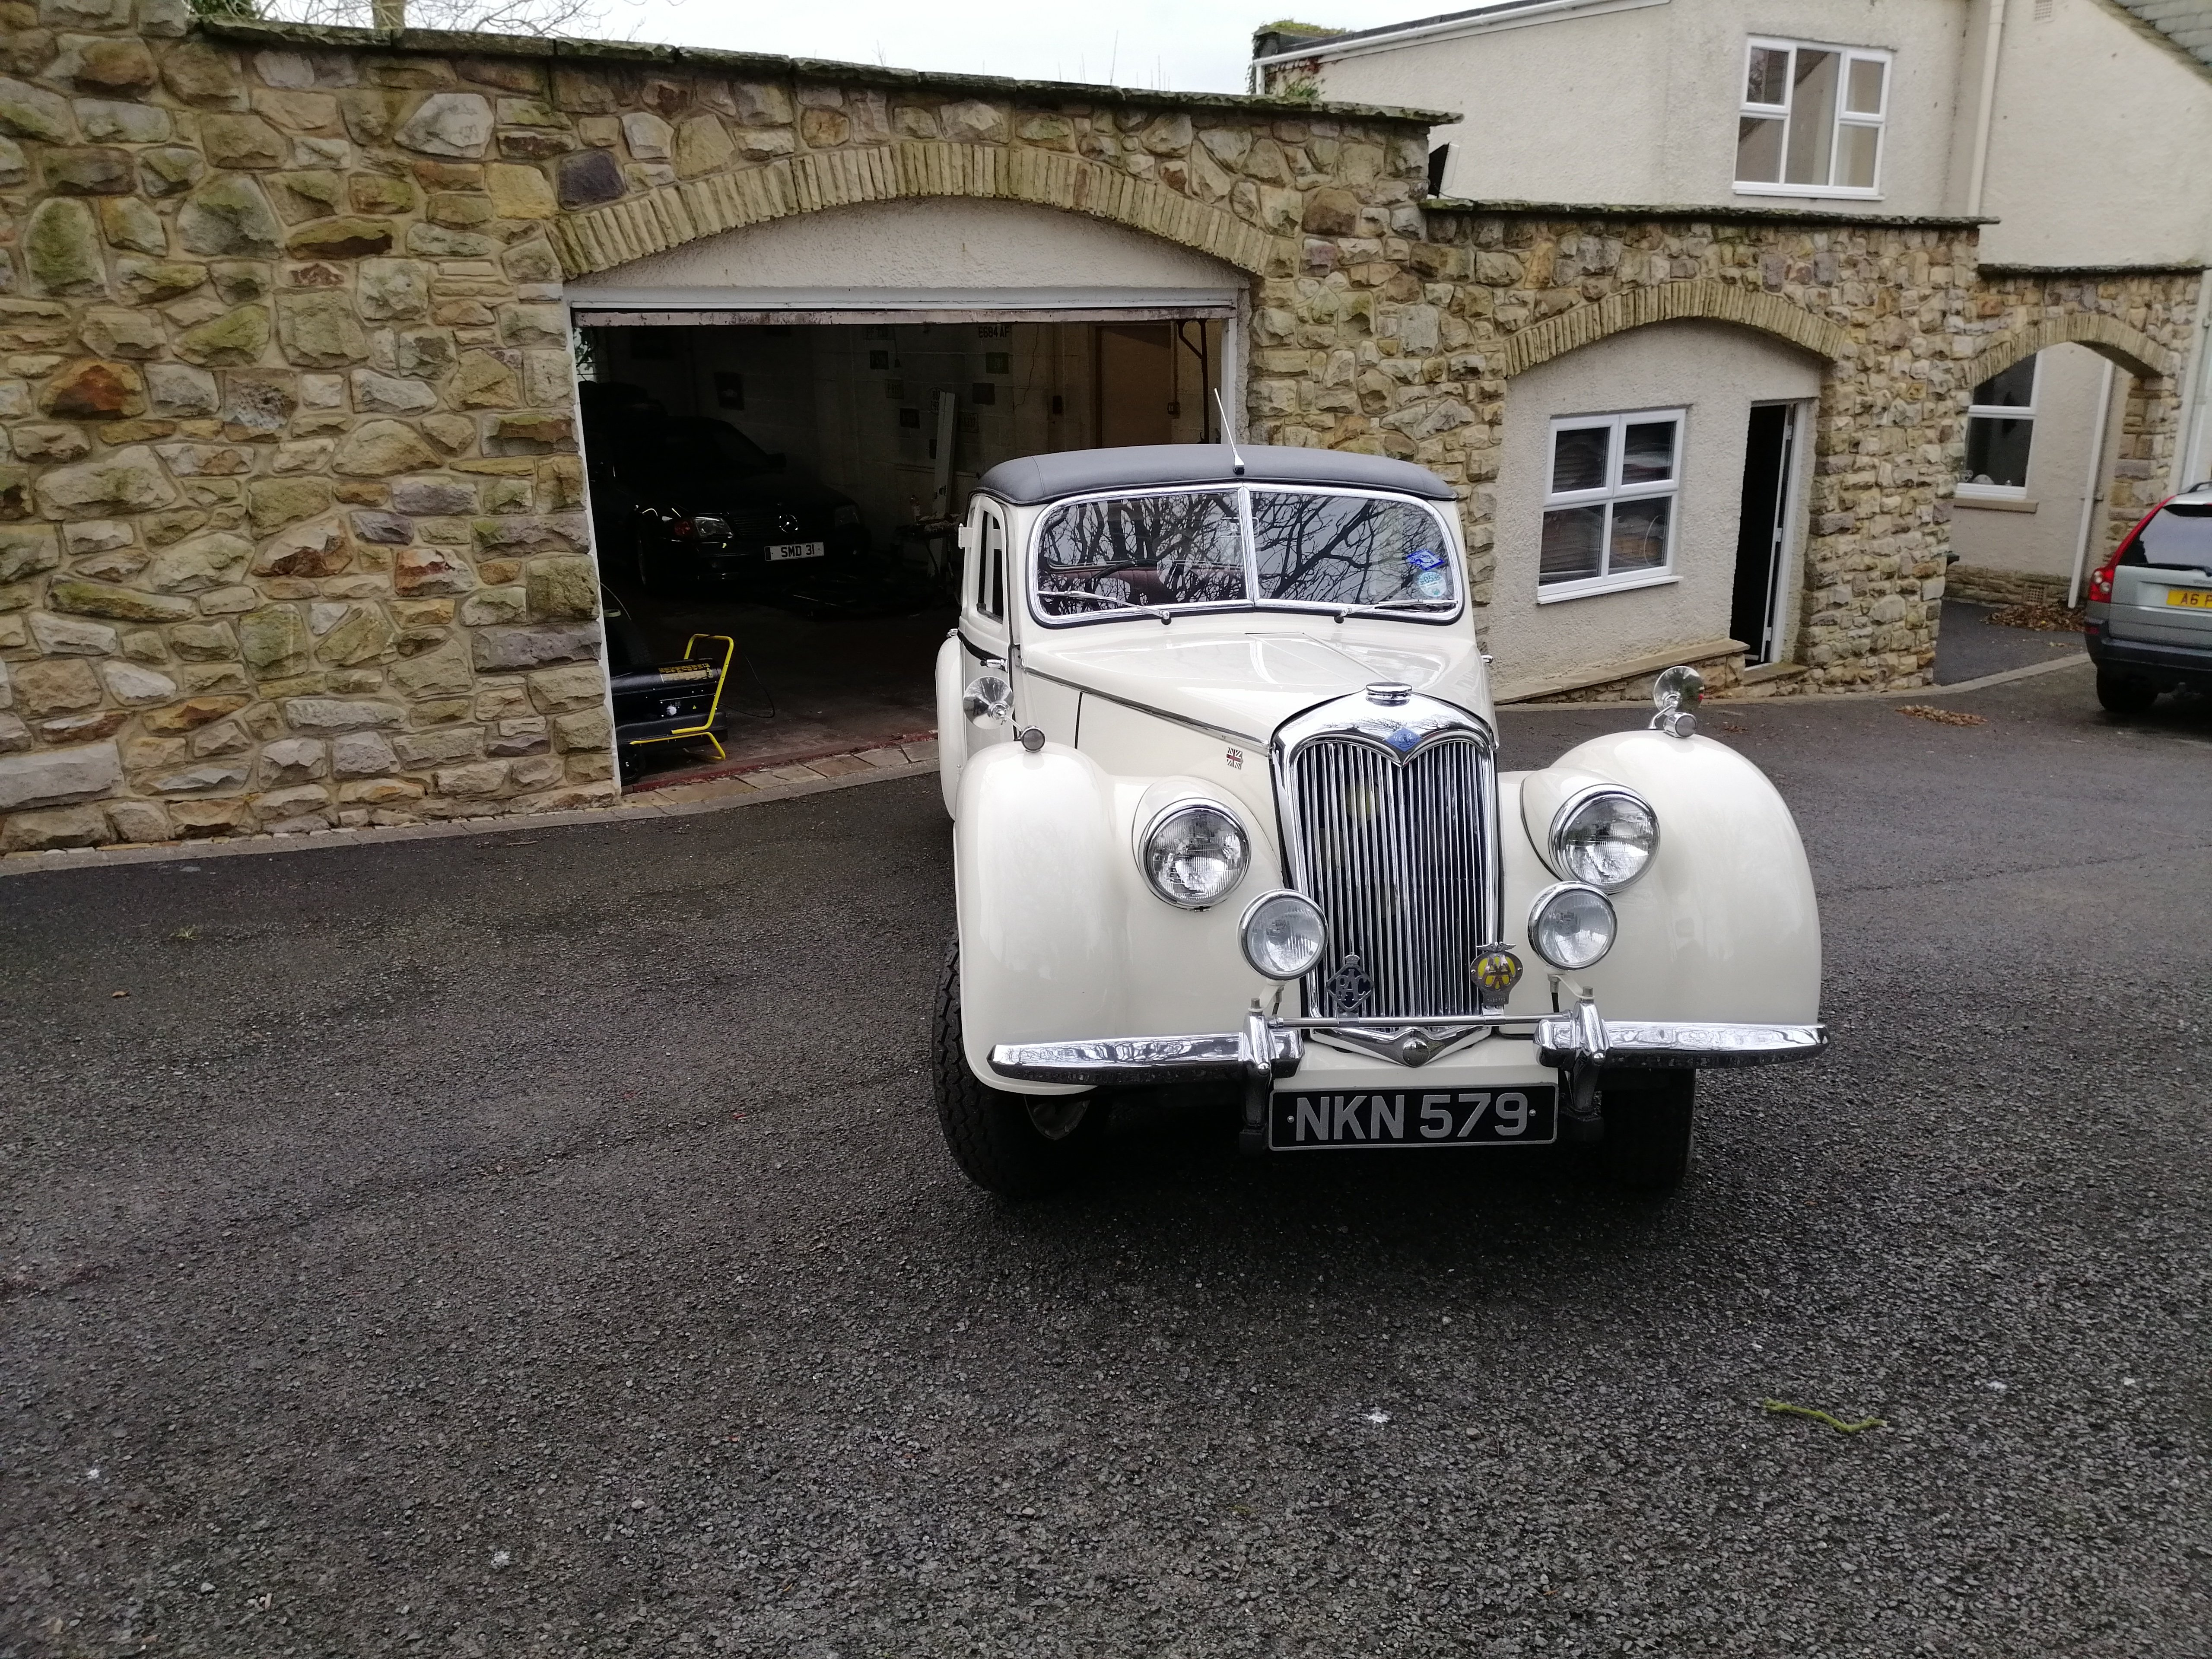 1949 Riley classic full restoration For Sale (picture 3 of 5)